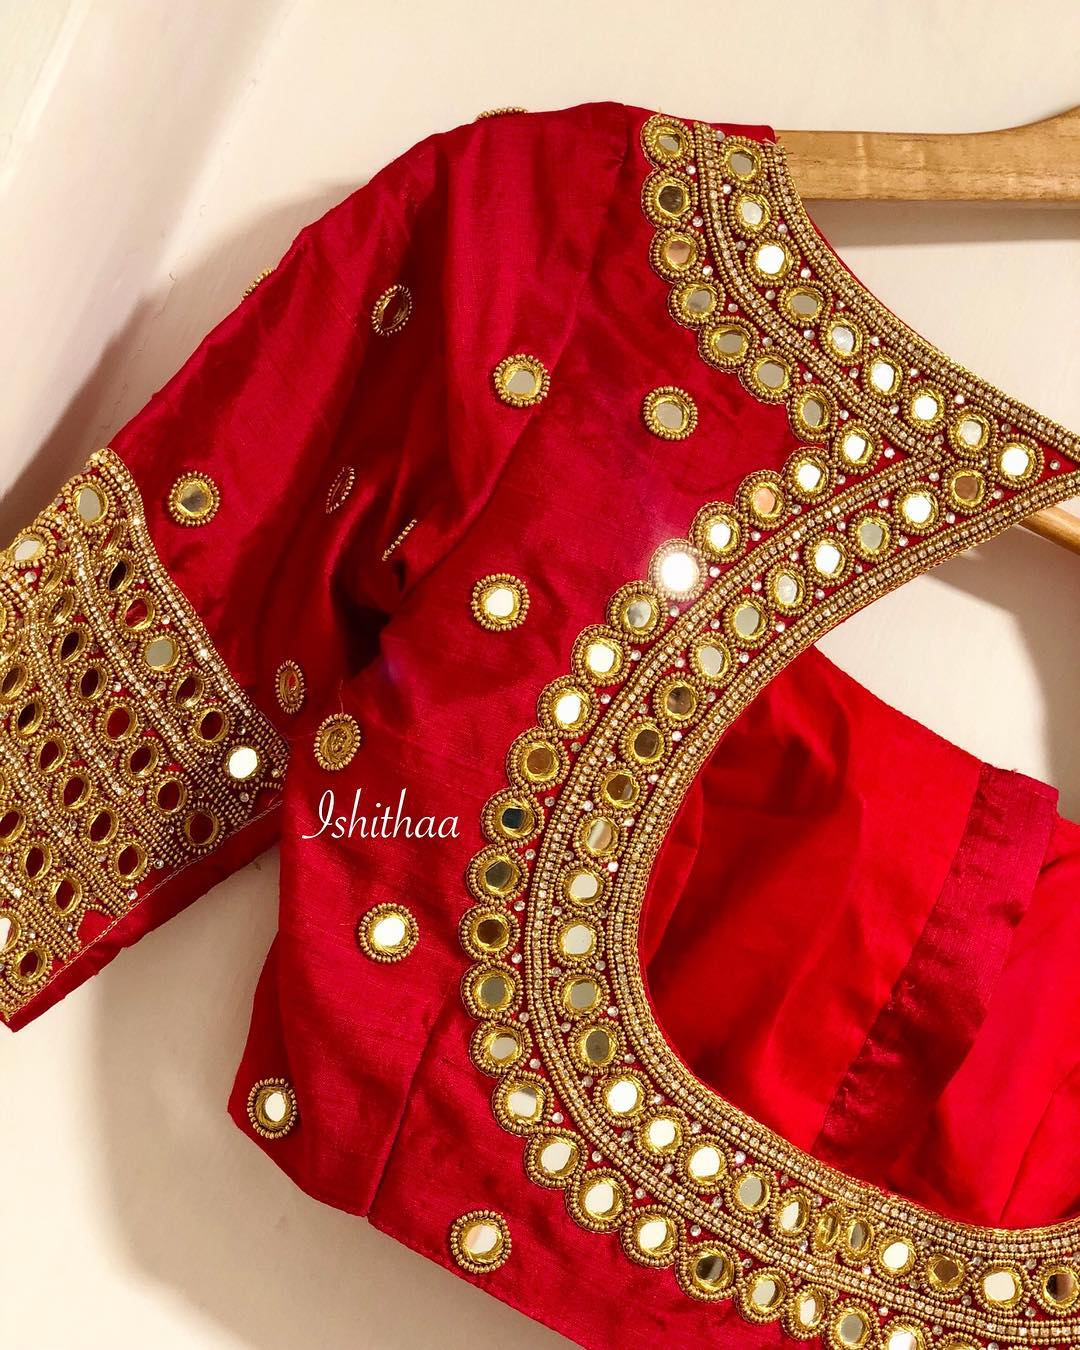 15fa7acb8c68c9 The Best Chennai Bridal Blouse Designers Just For You - Frugal2Fab